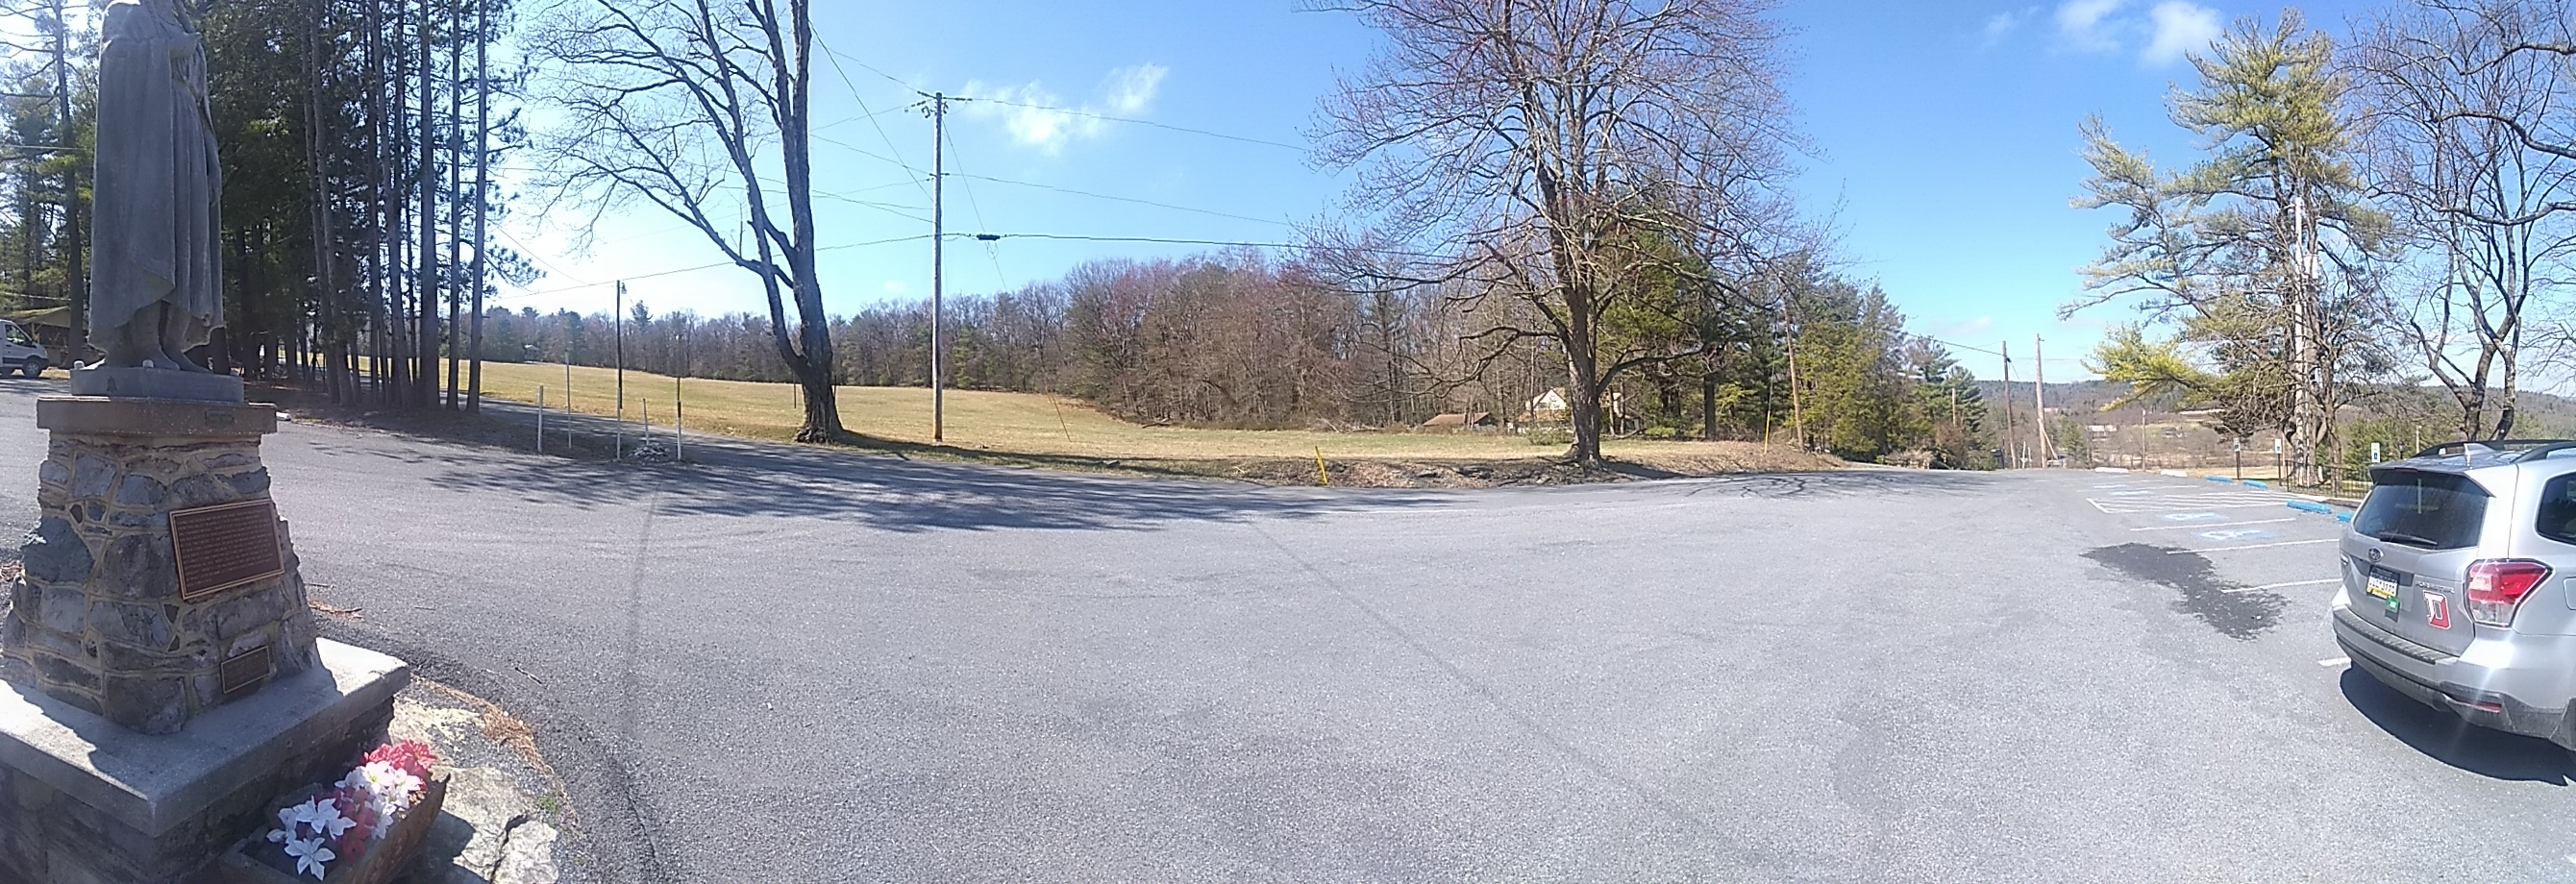 Panoramic View of area, near Mary Jemison Statue